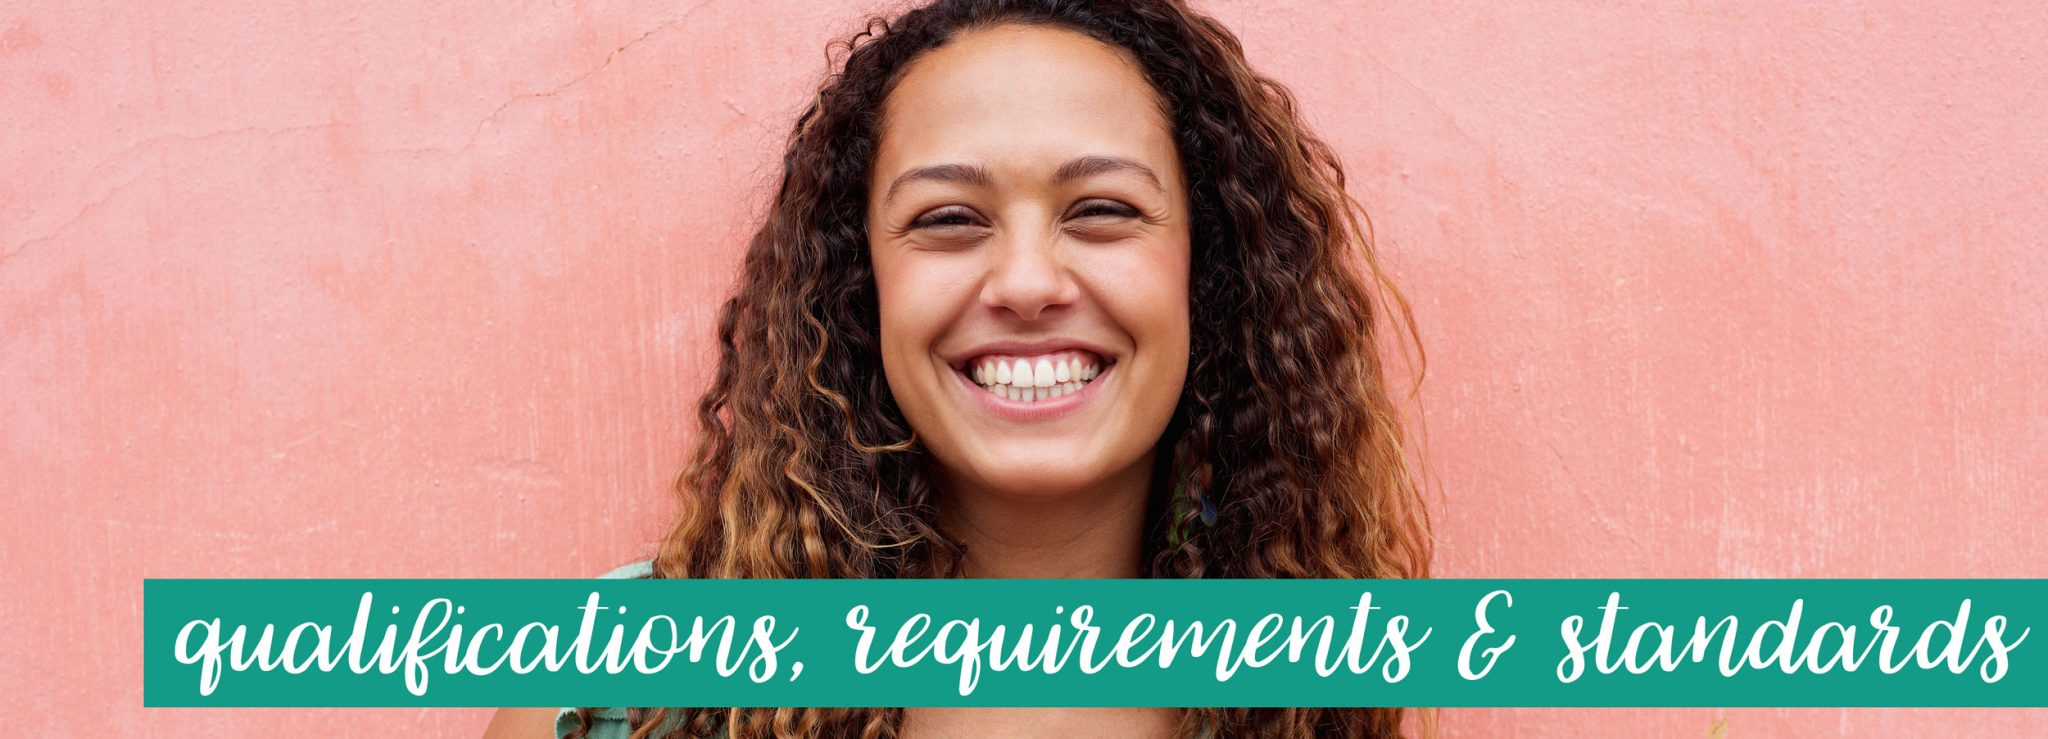 Lovely happy nanny smiling in support of the qualifications, requirements and standards information from Capitol Park Nannies, Sacramento-based Nanny Agency